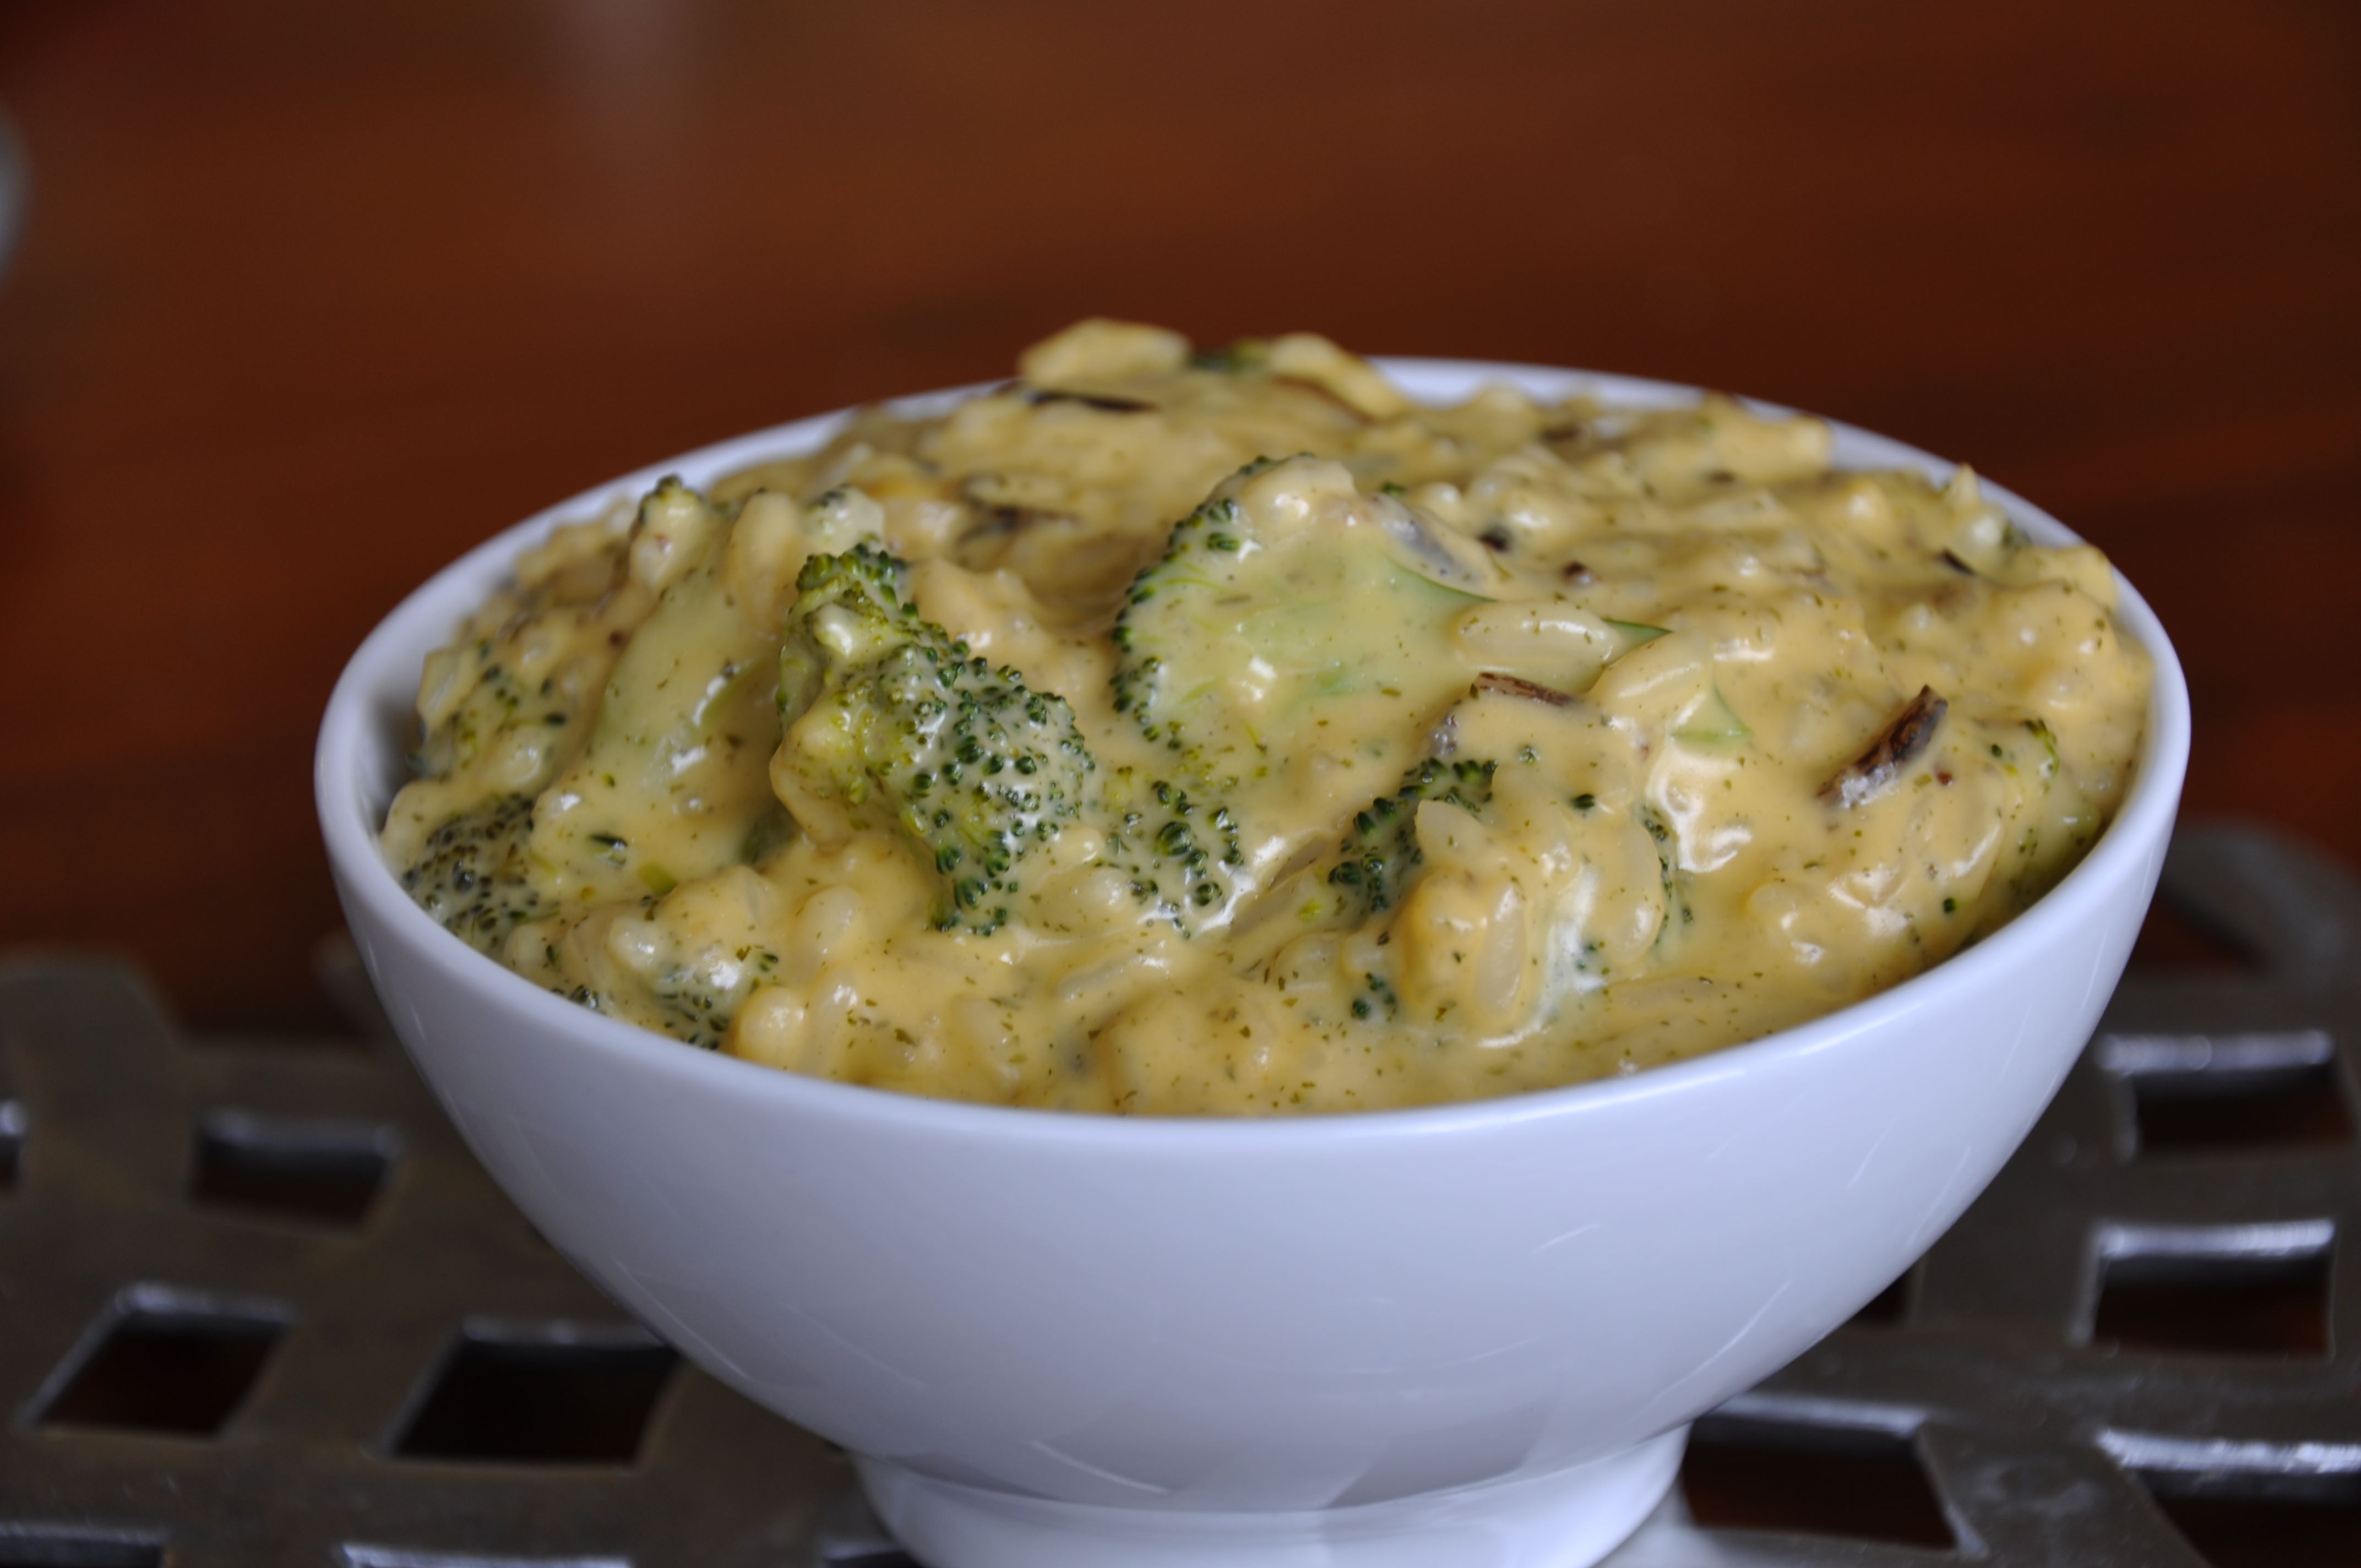 Picture of Broccoli Cheese Casserole